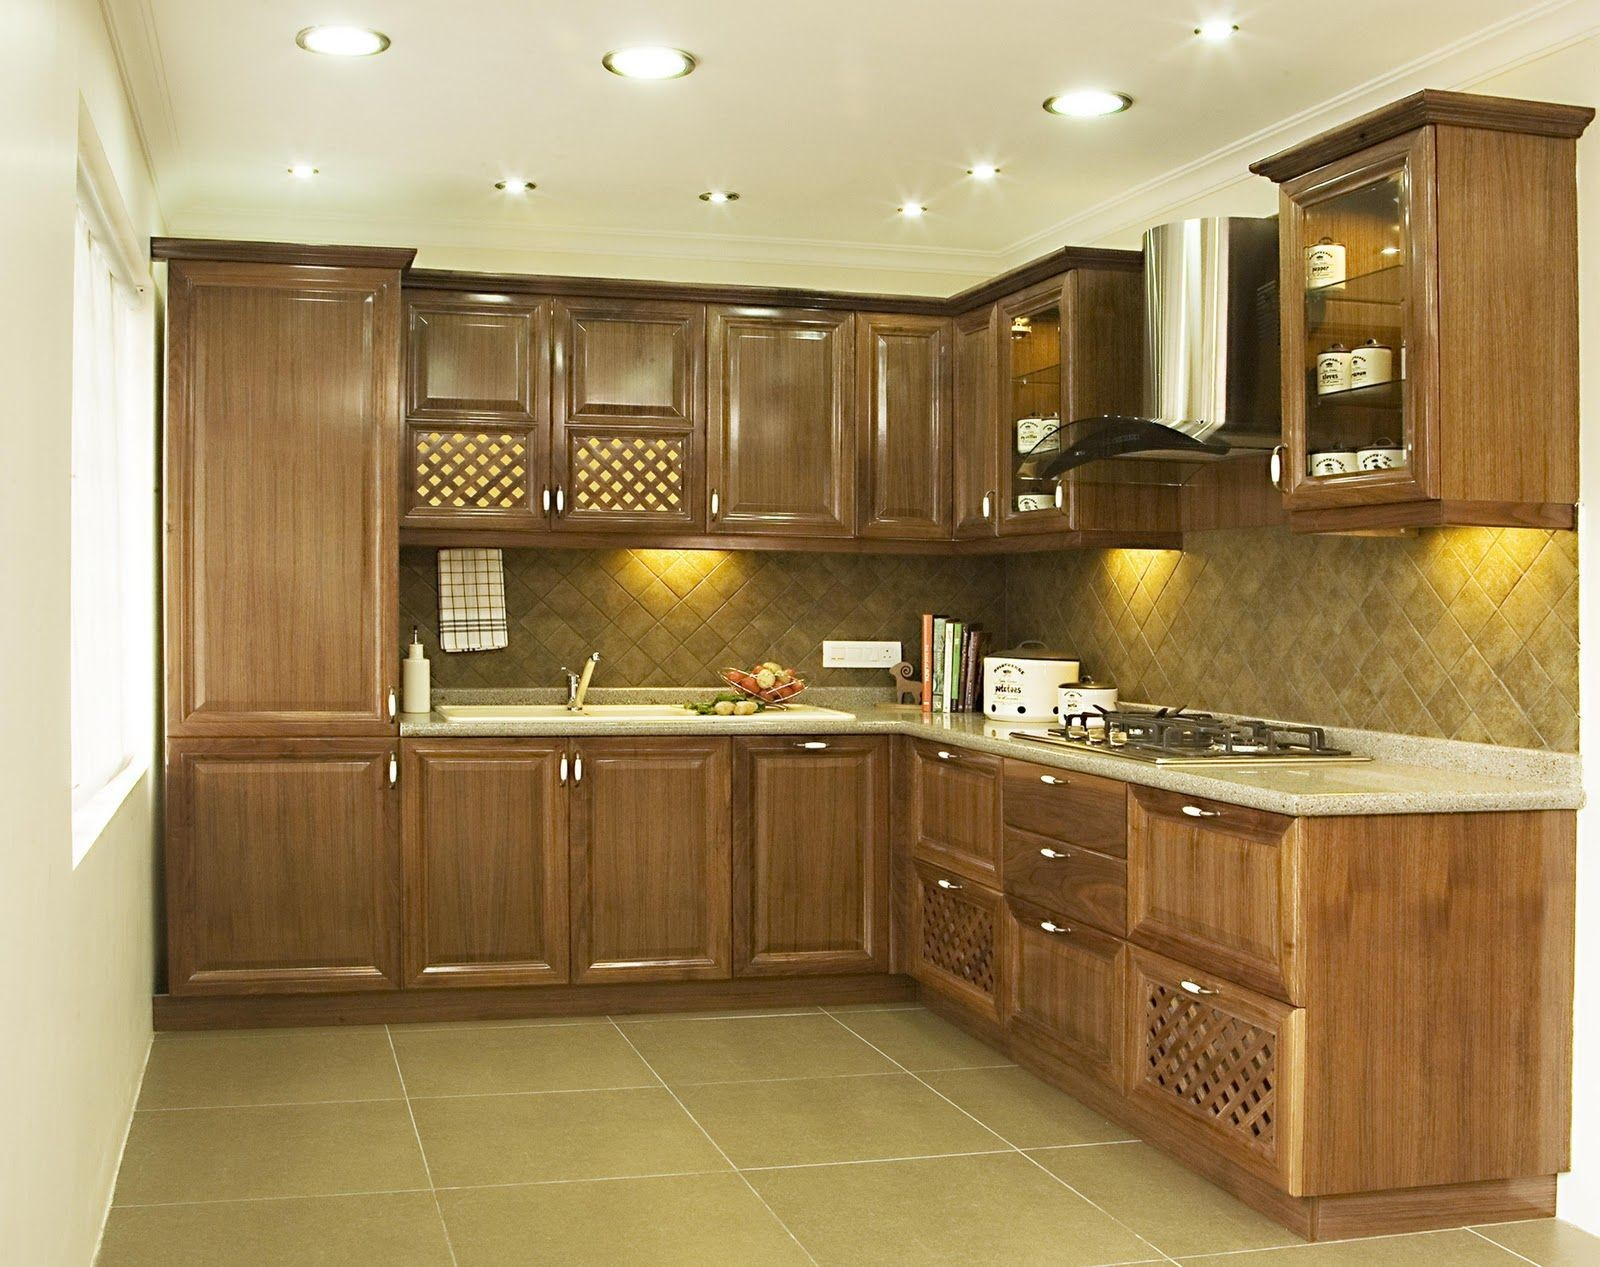 Some Smart Bud Oriented Home Renovation Ideas Simple Small Bud Kitchen Renovation Design Featuring Modular Wooden Kitchen Cabinets W